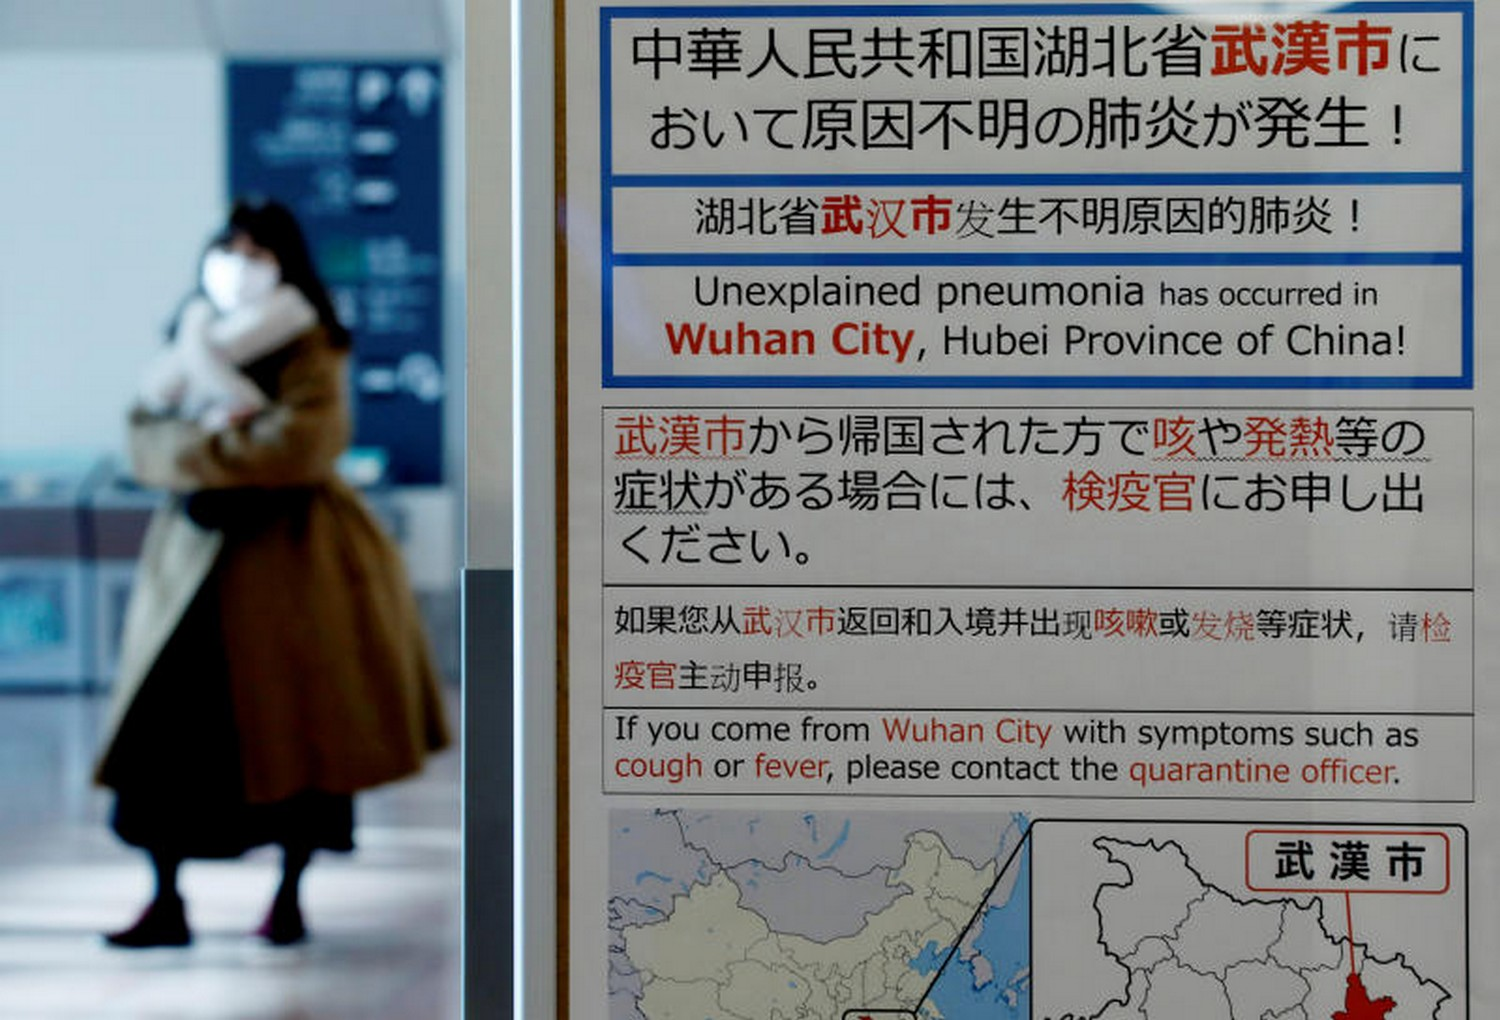 A woman wearing a mask walks past a quarantine notice about the outbreak of coronavirus in Wuhan, China at an arrival hall of Haneda airport in Tokyo on Monday. (Reuters photo)